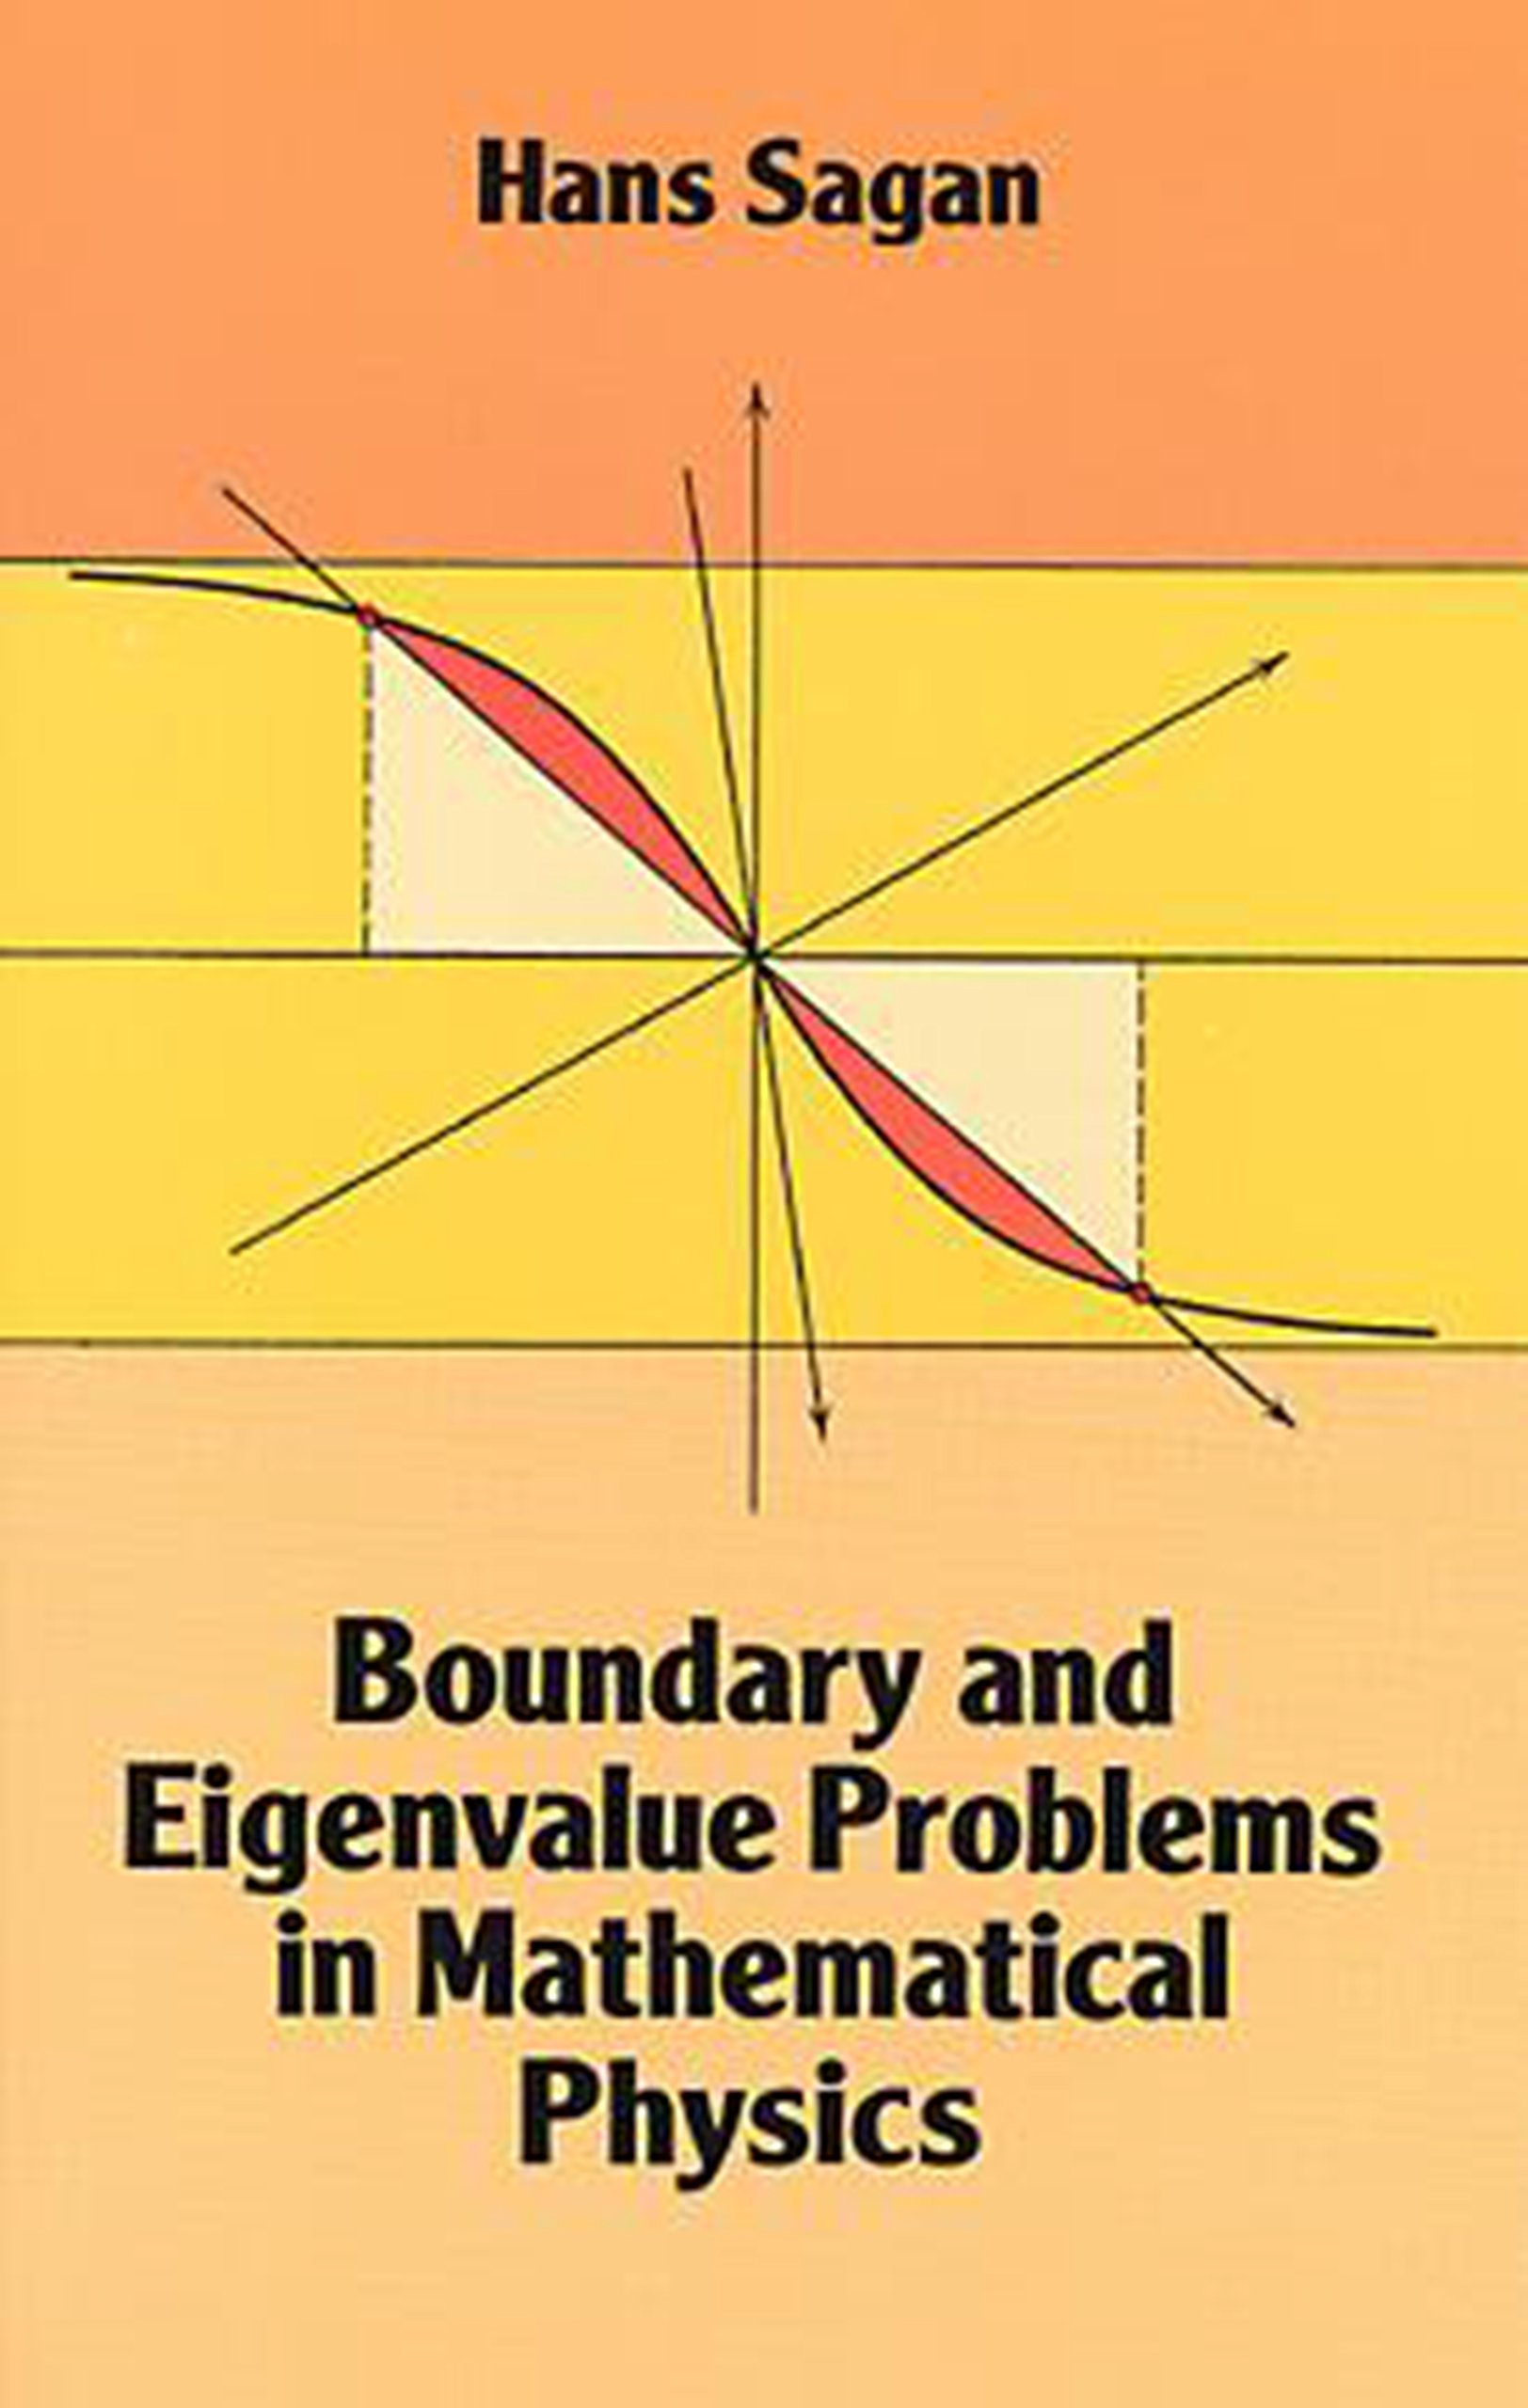 Boundary and Eigenvalue Problems in Mathematical Physics (Dover Books on Physics)